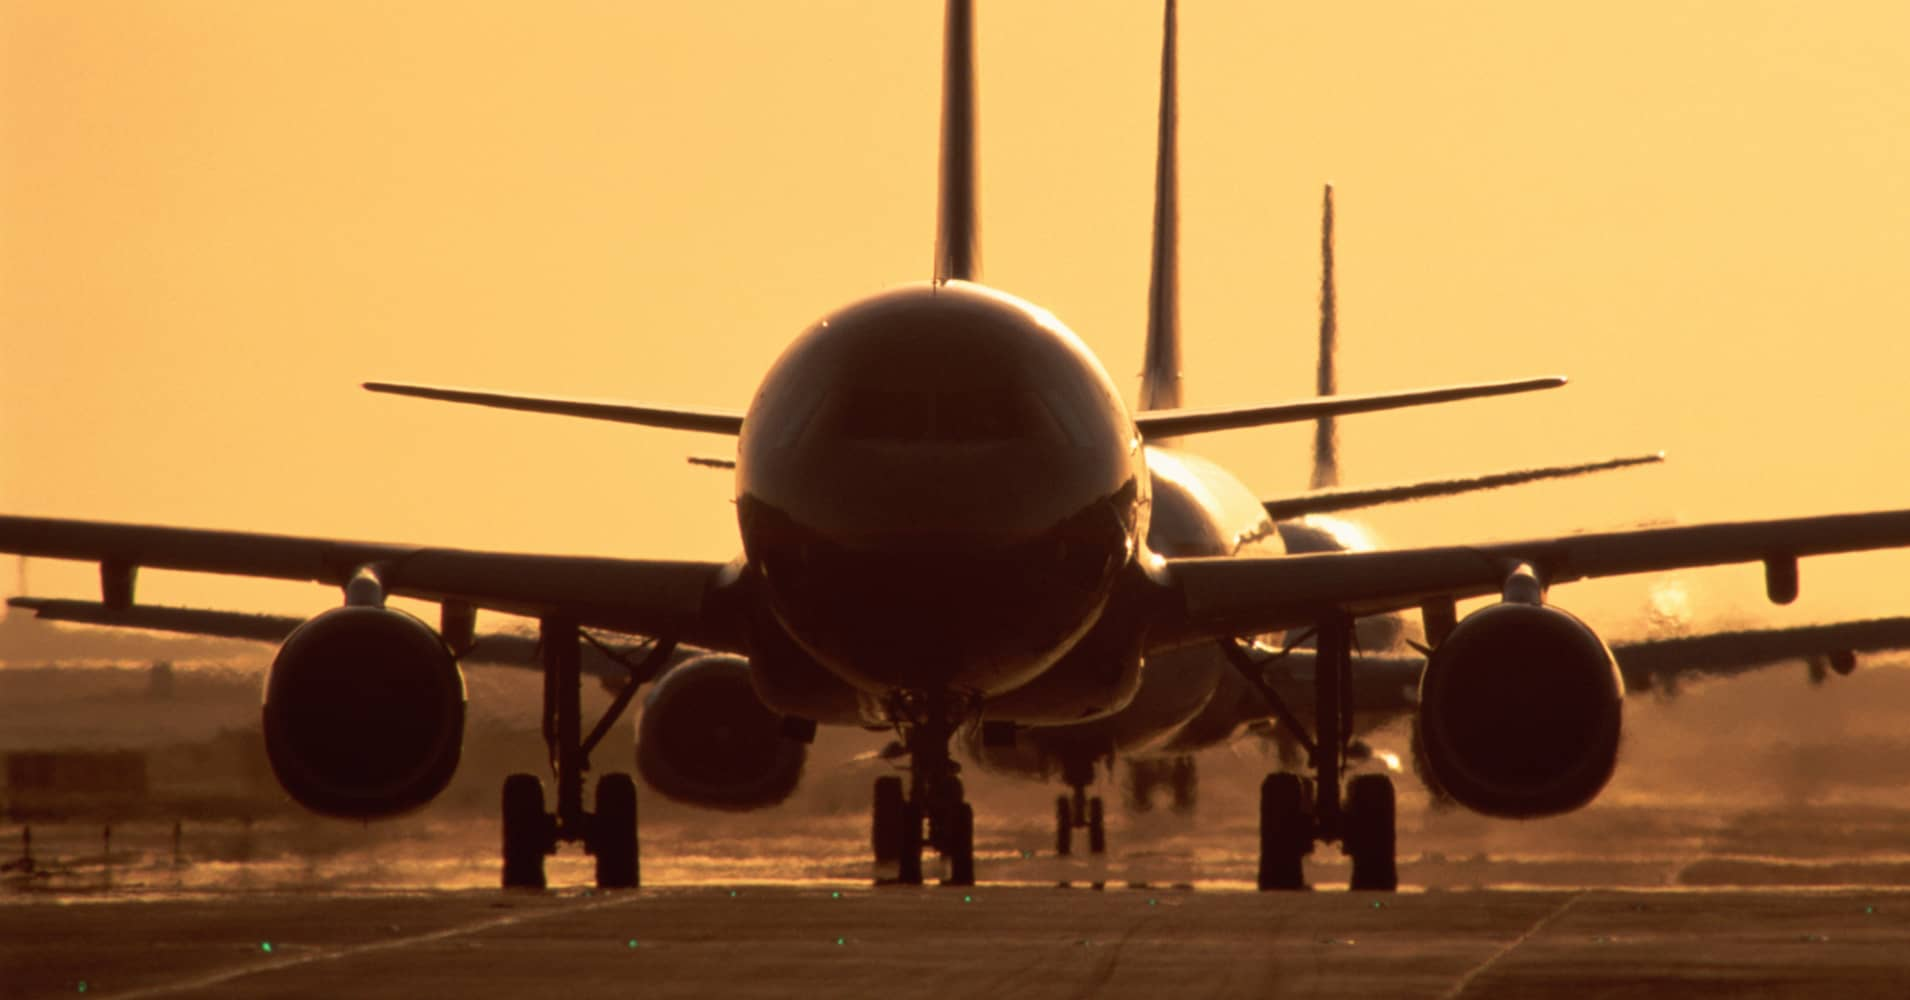 Airplanes wait at airport